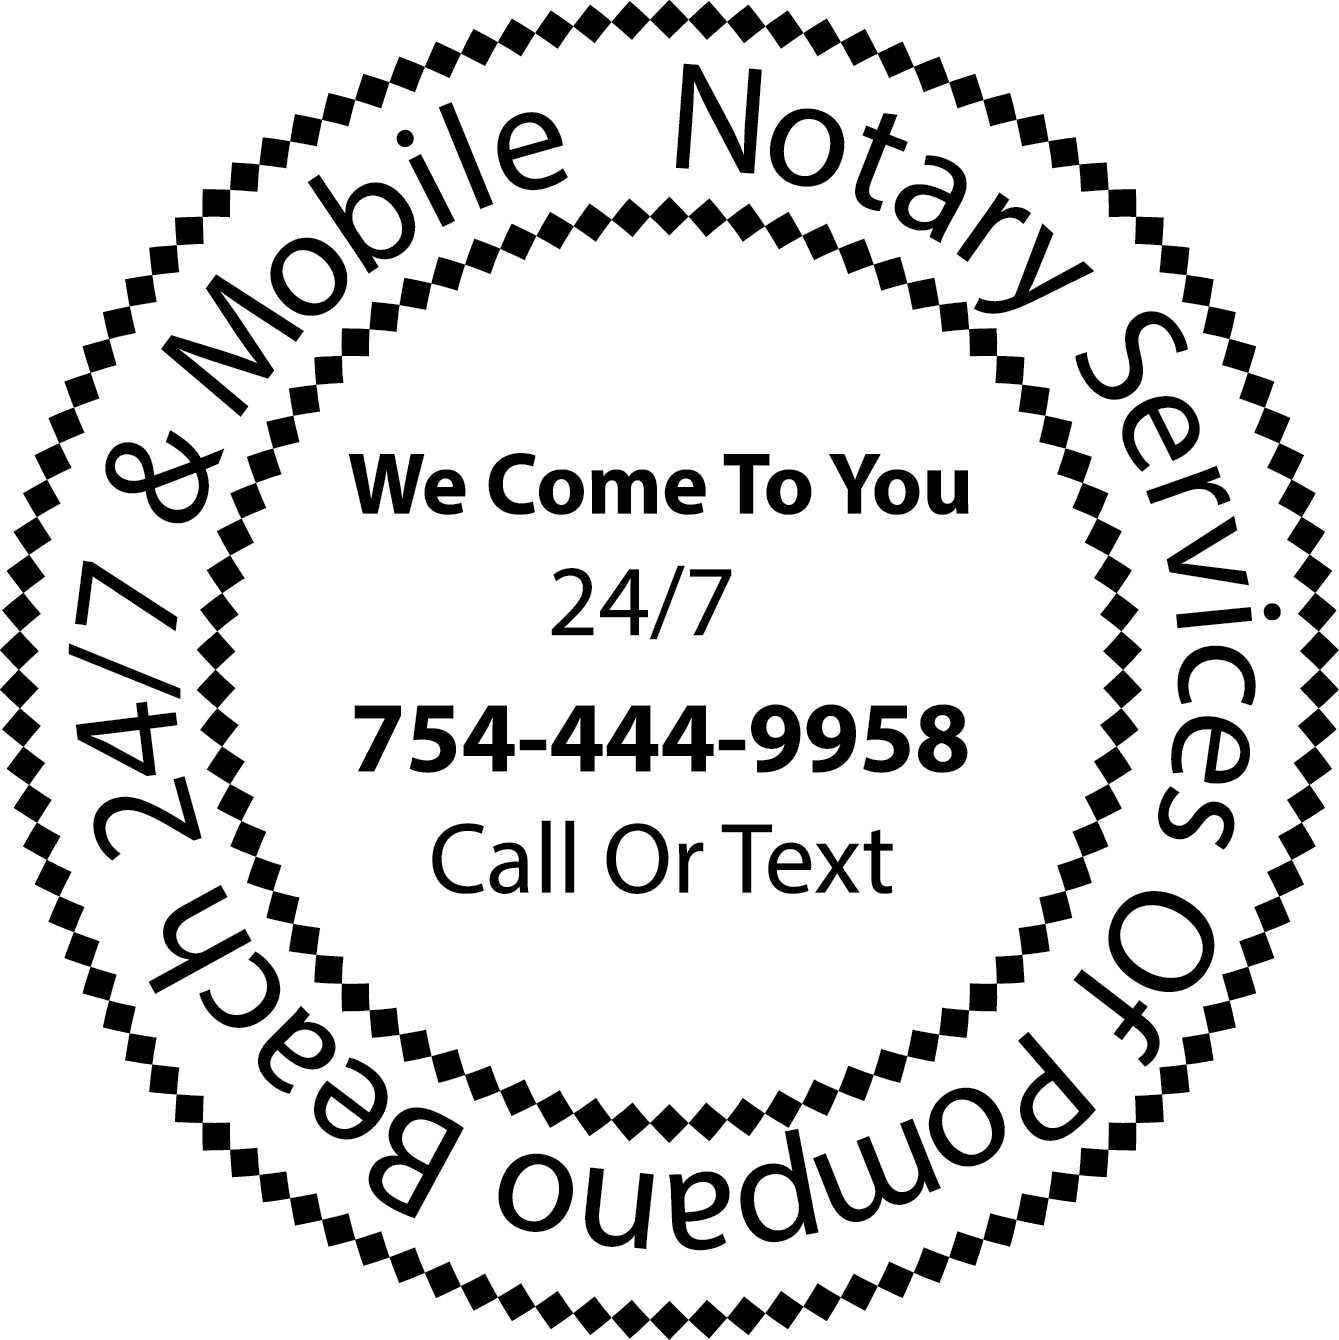 Do You Need A 10 Notary Stamp Or A Mobile Notary Service Notary